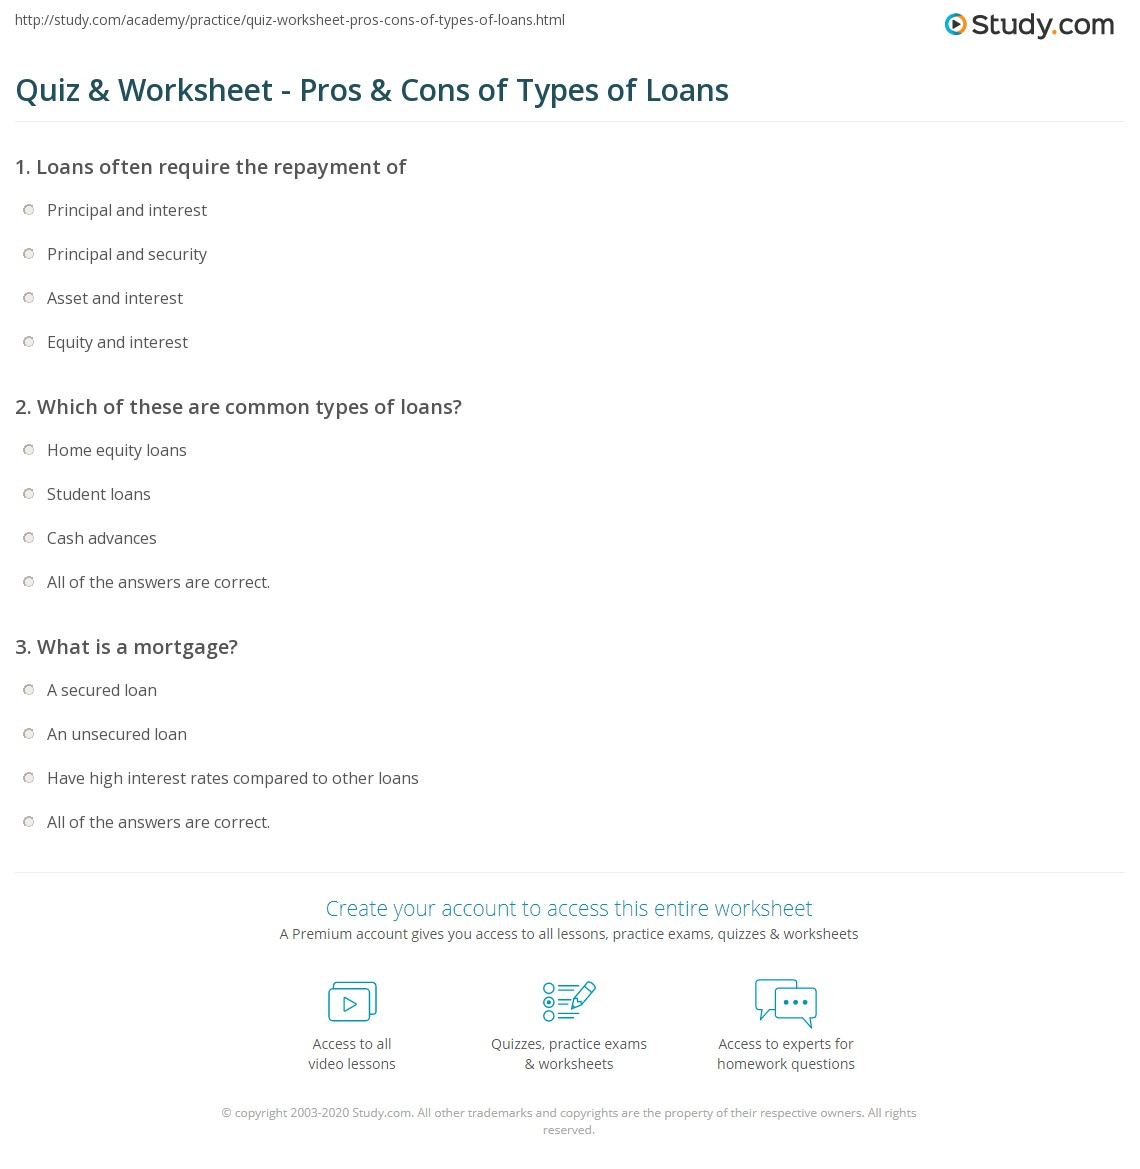 quiz & worksheet - pros & cons of types of loans | study